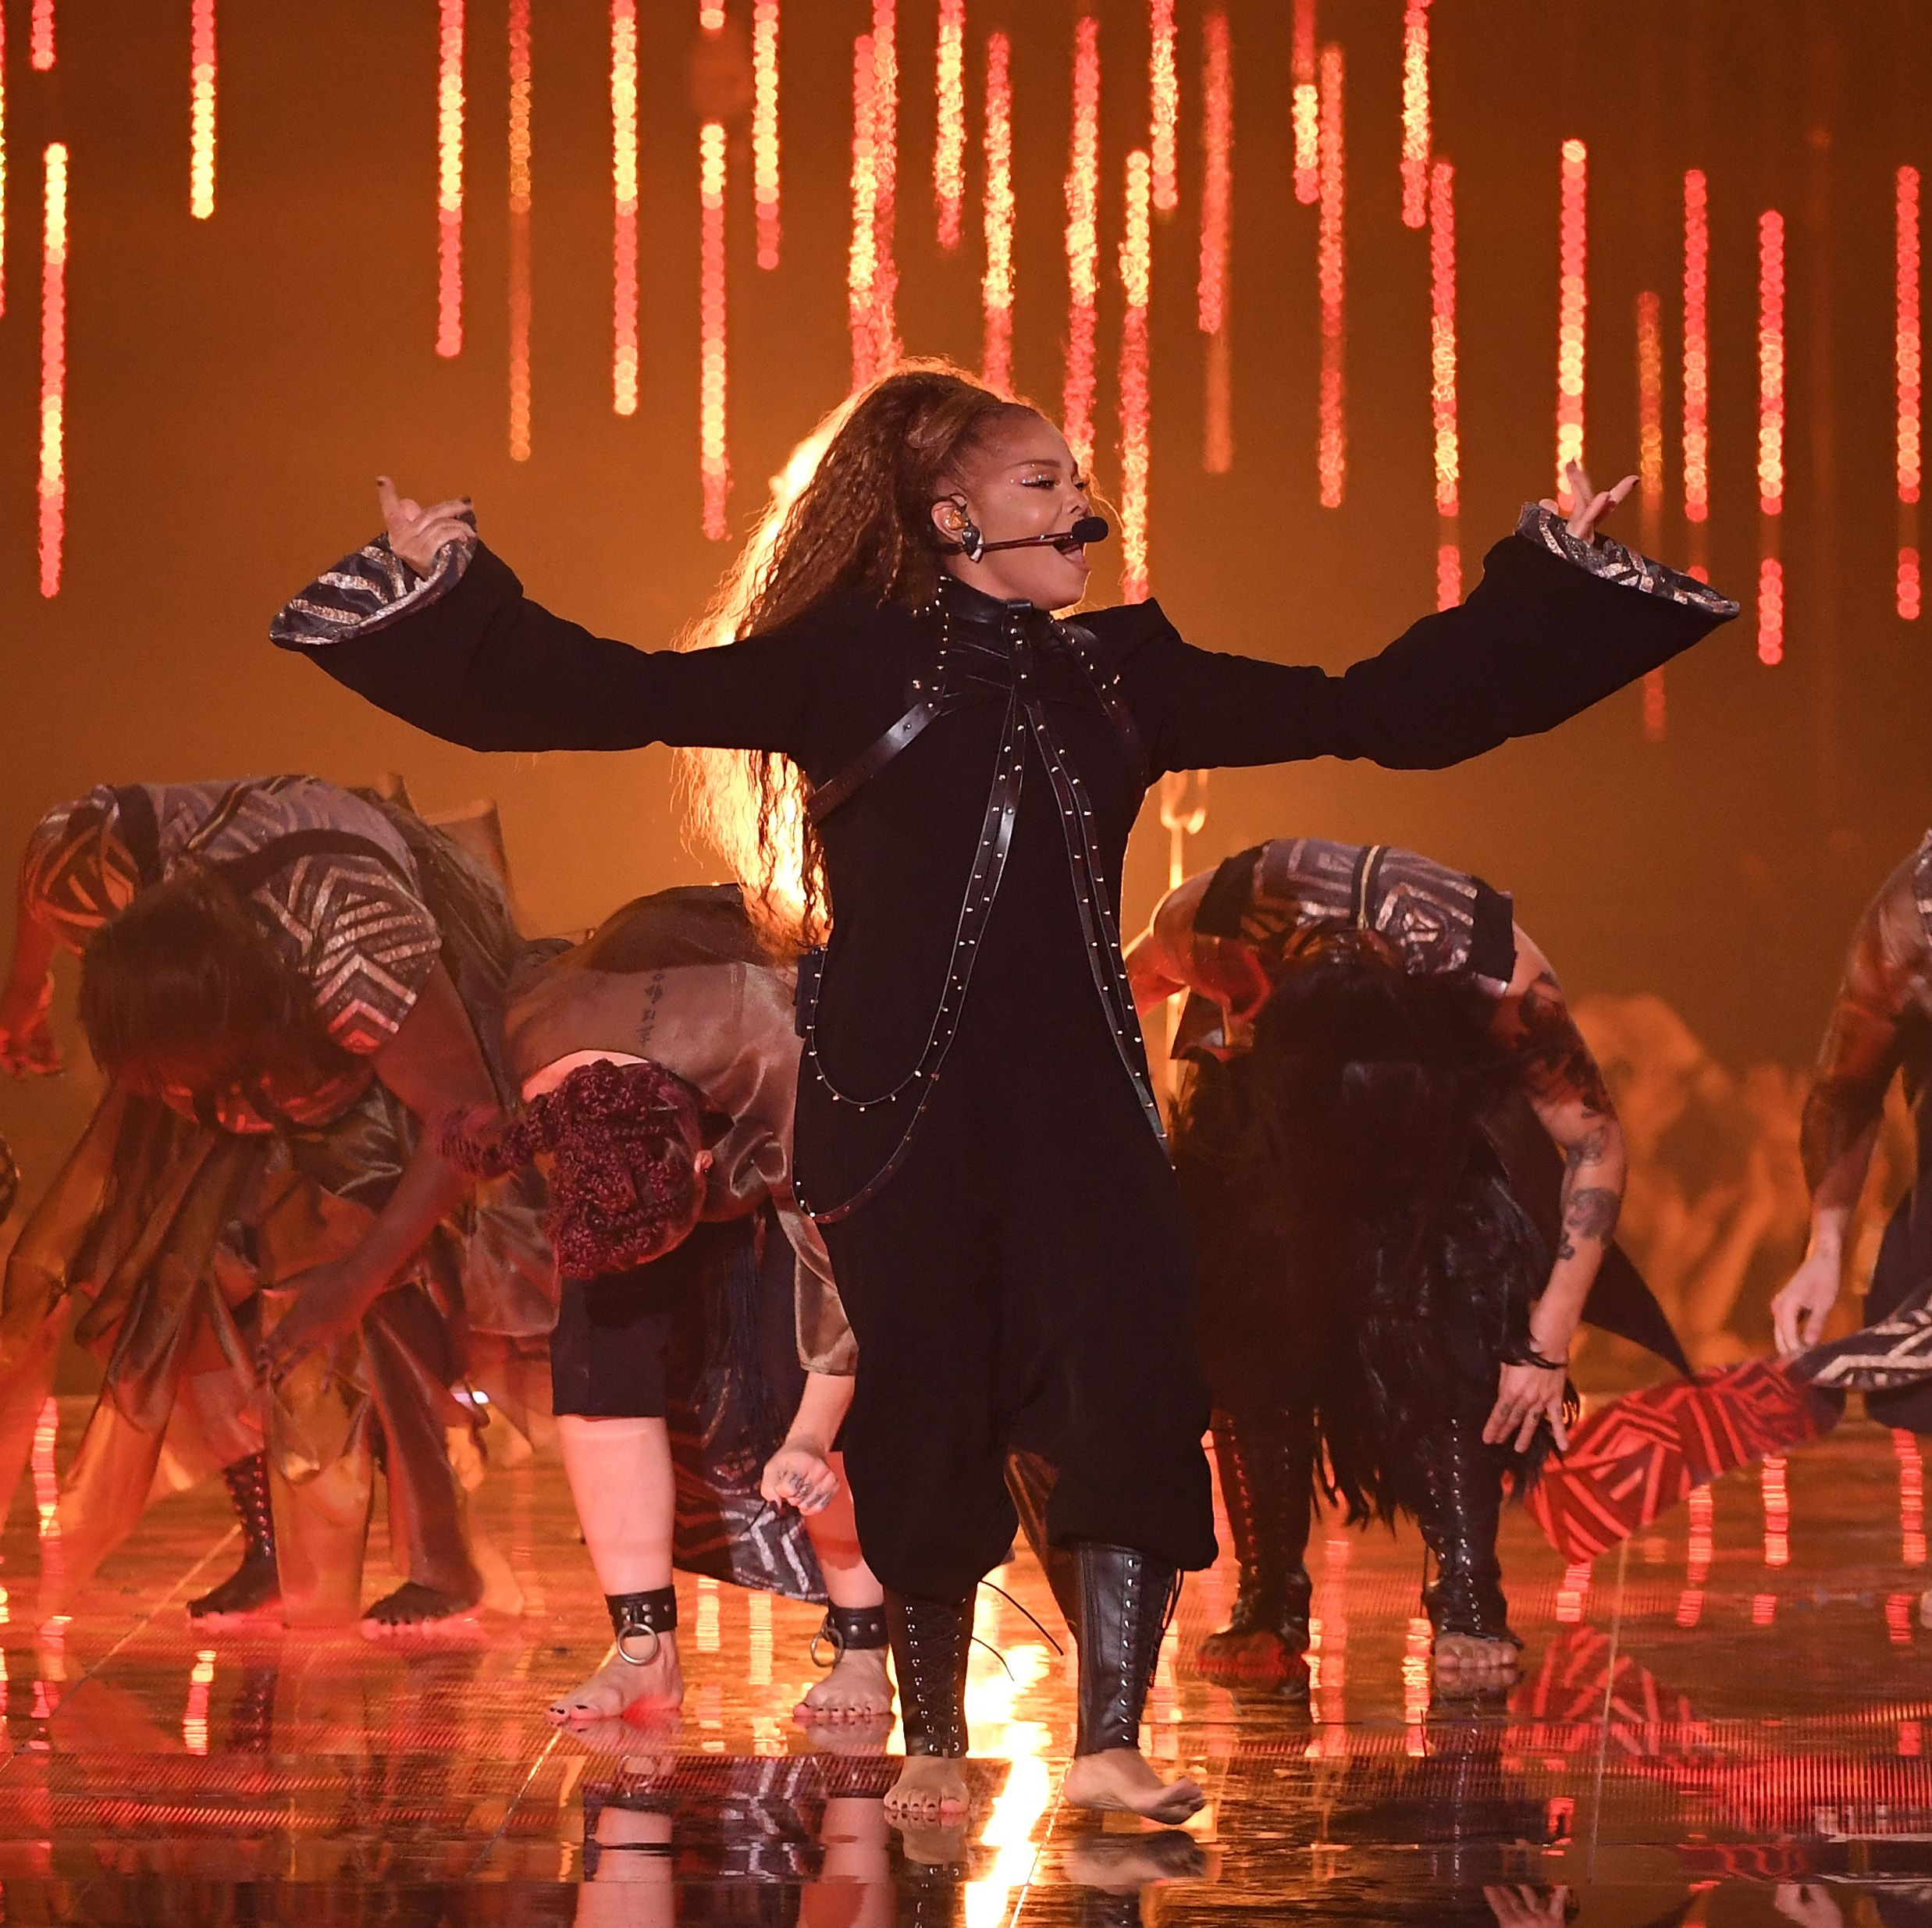 Erm, Janet Jackson just bumped herself up the Glastonbury line-up